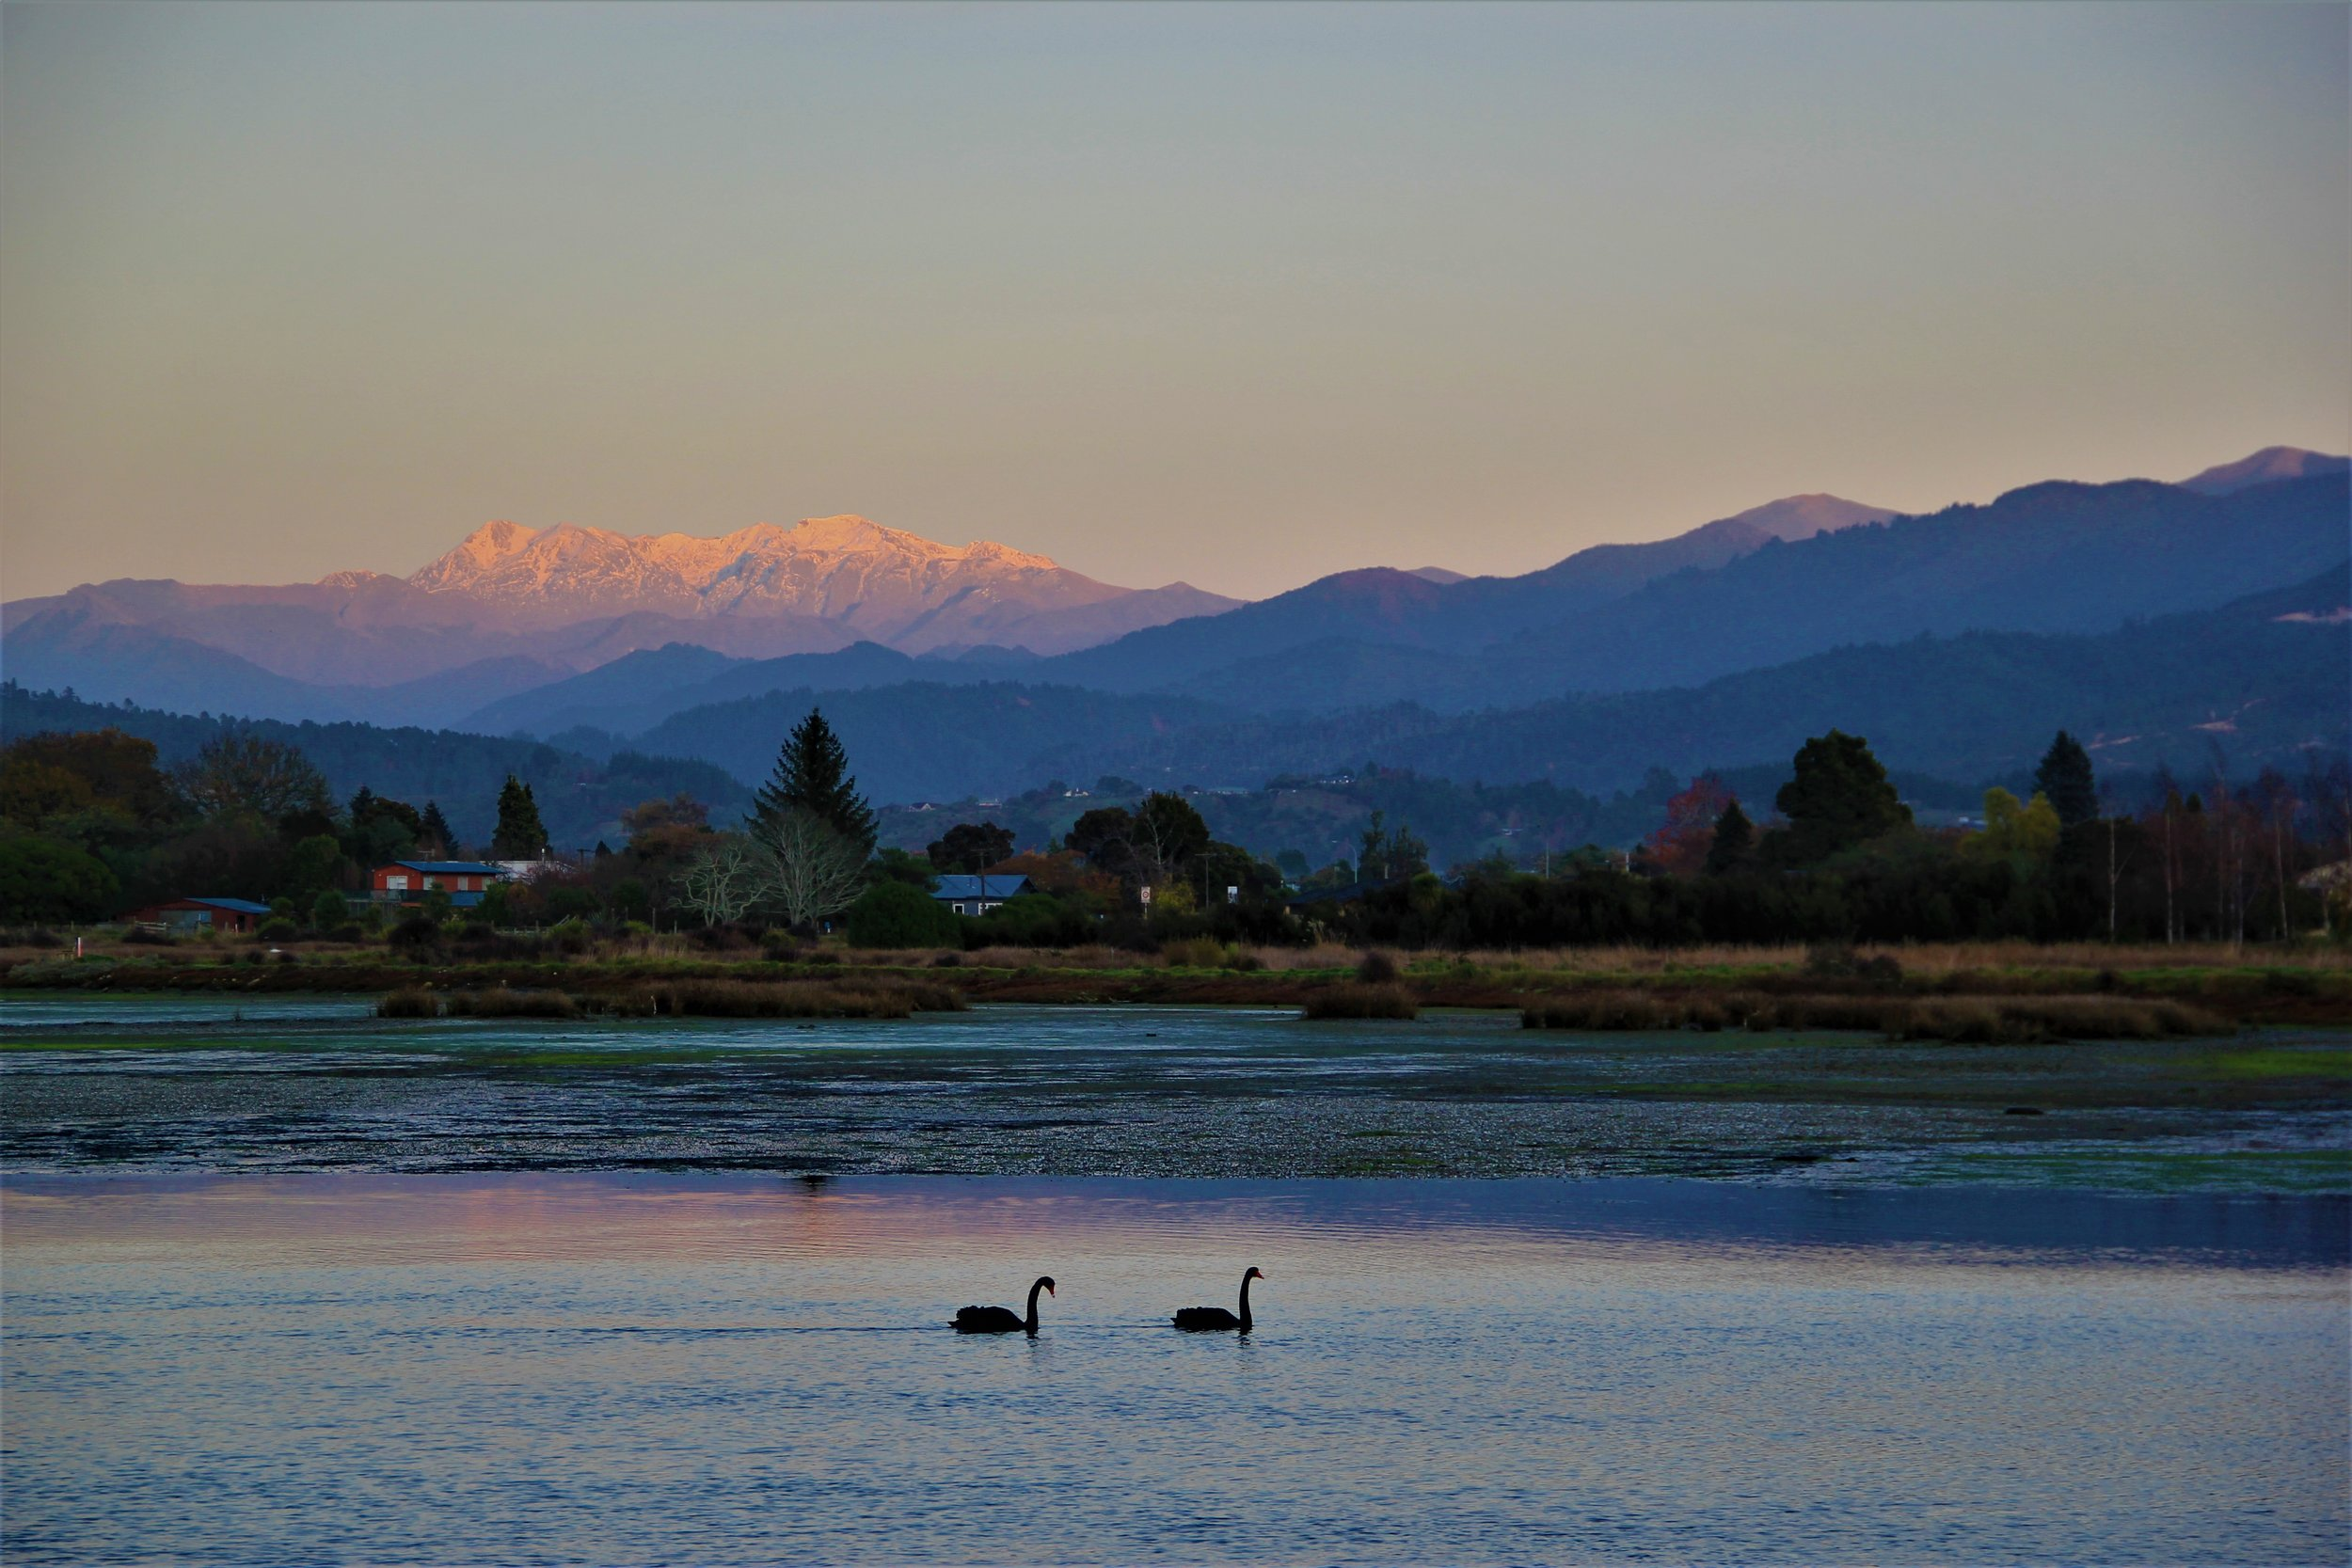 Looking West to the Arthur range on an early winter dawn. The Black swans live at the Nelson lakes during summer but migrate North and lower to the more benign climes of the Motueka estuary for winter.